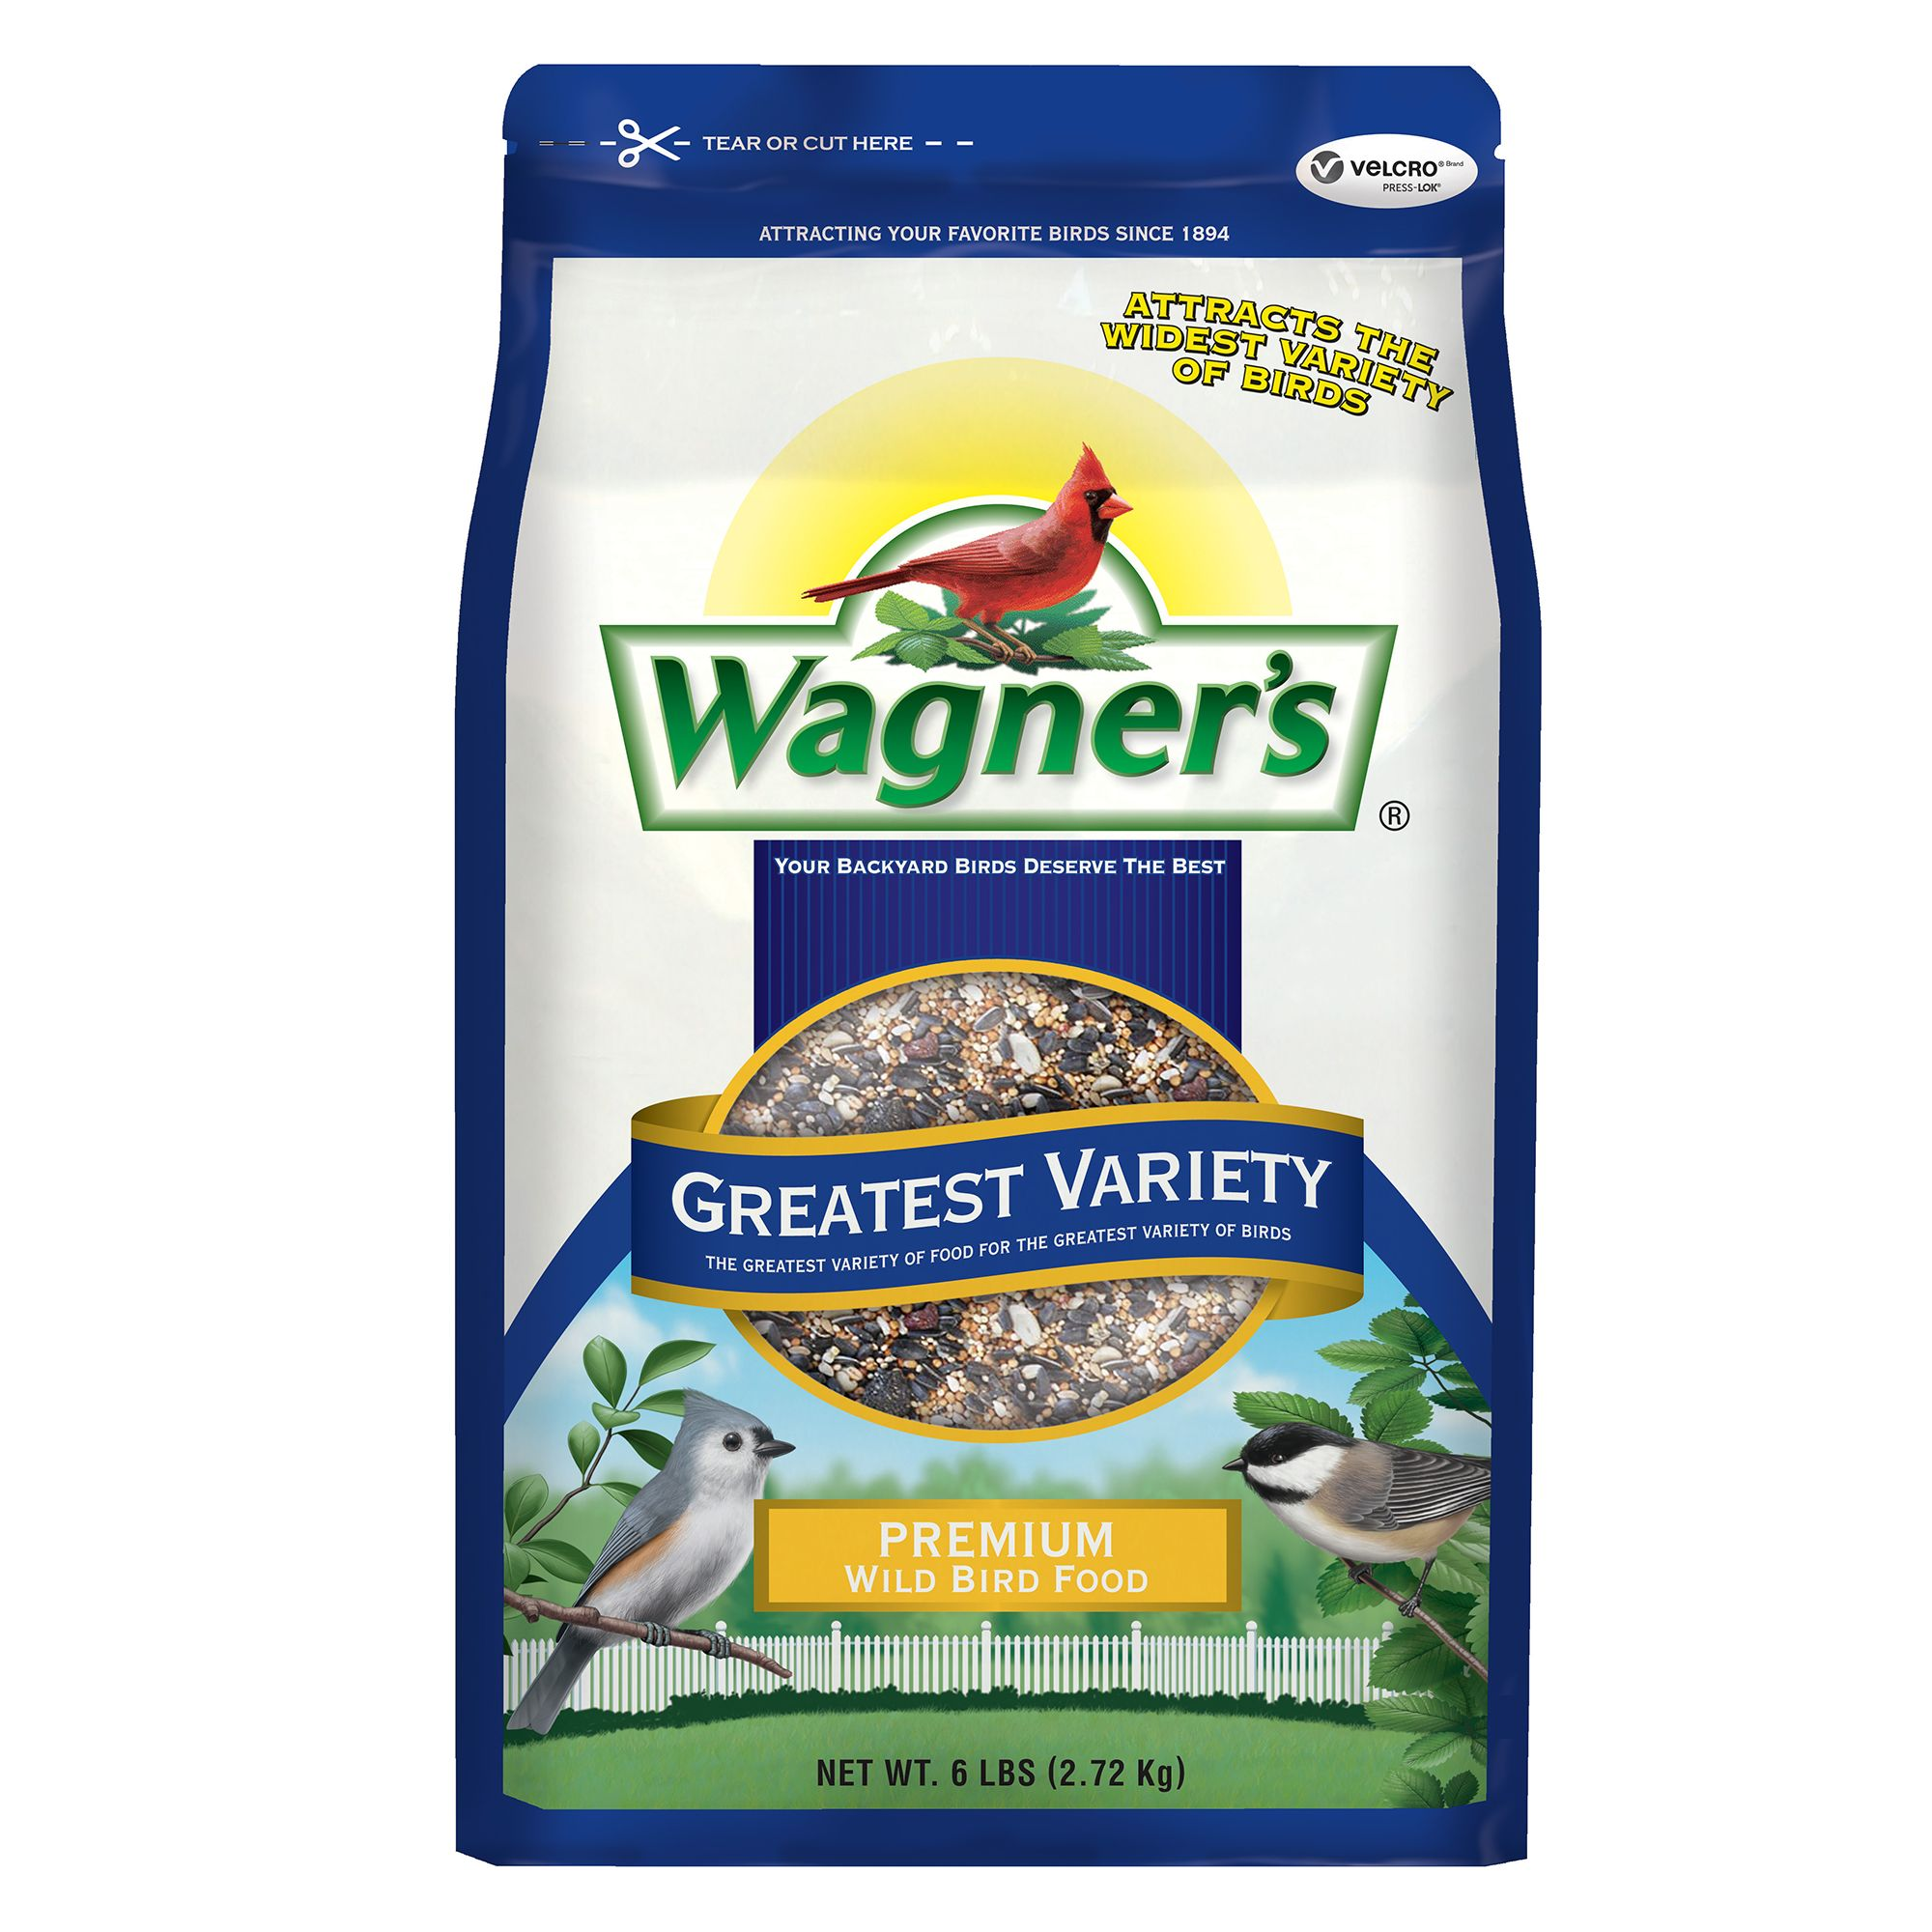 Bird Supplies for Parrots, Parakeets & More | PetSmart